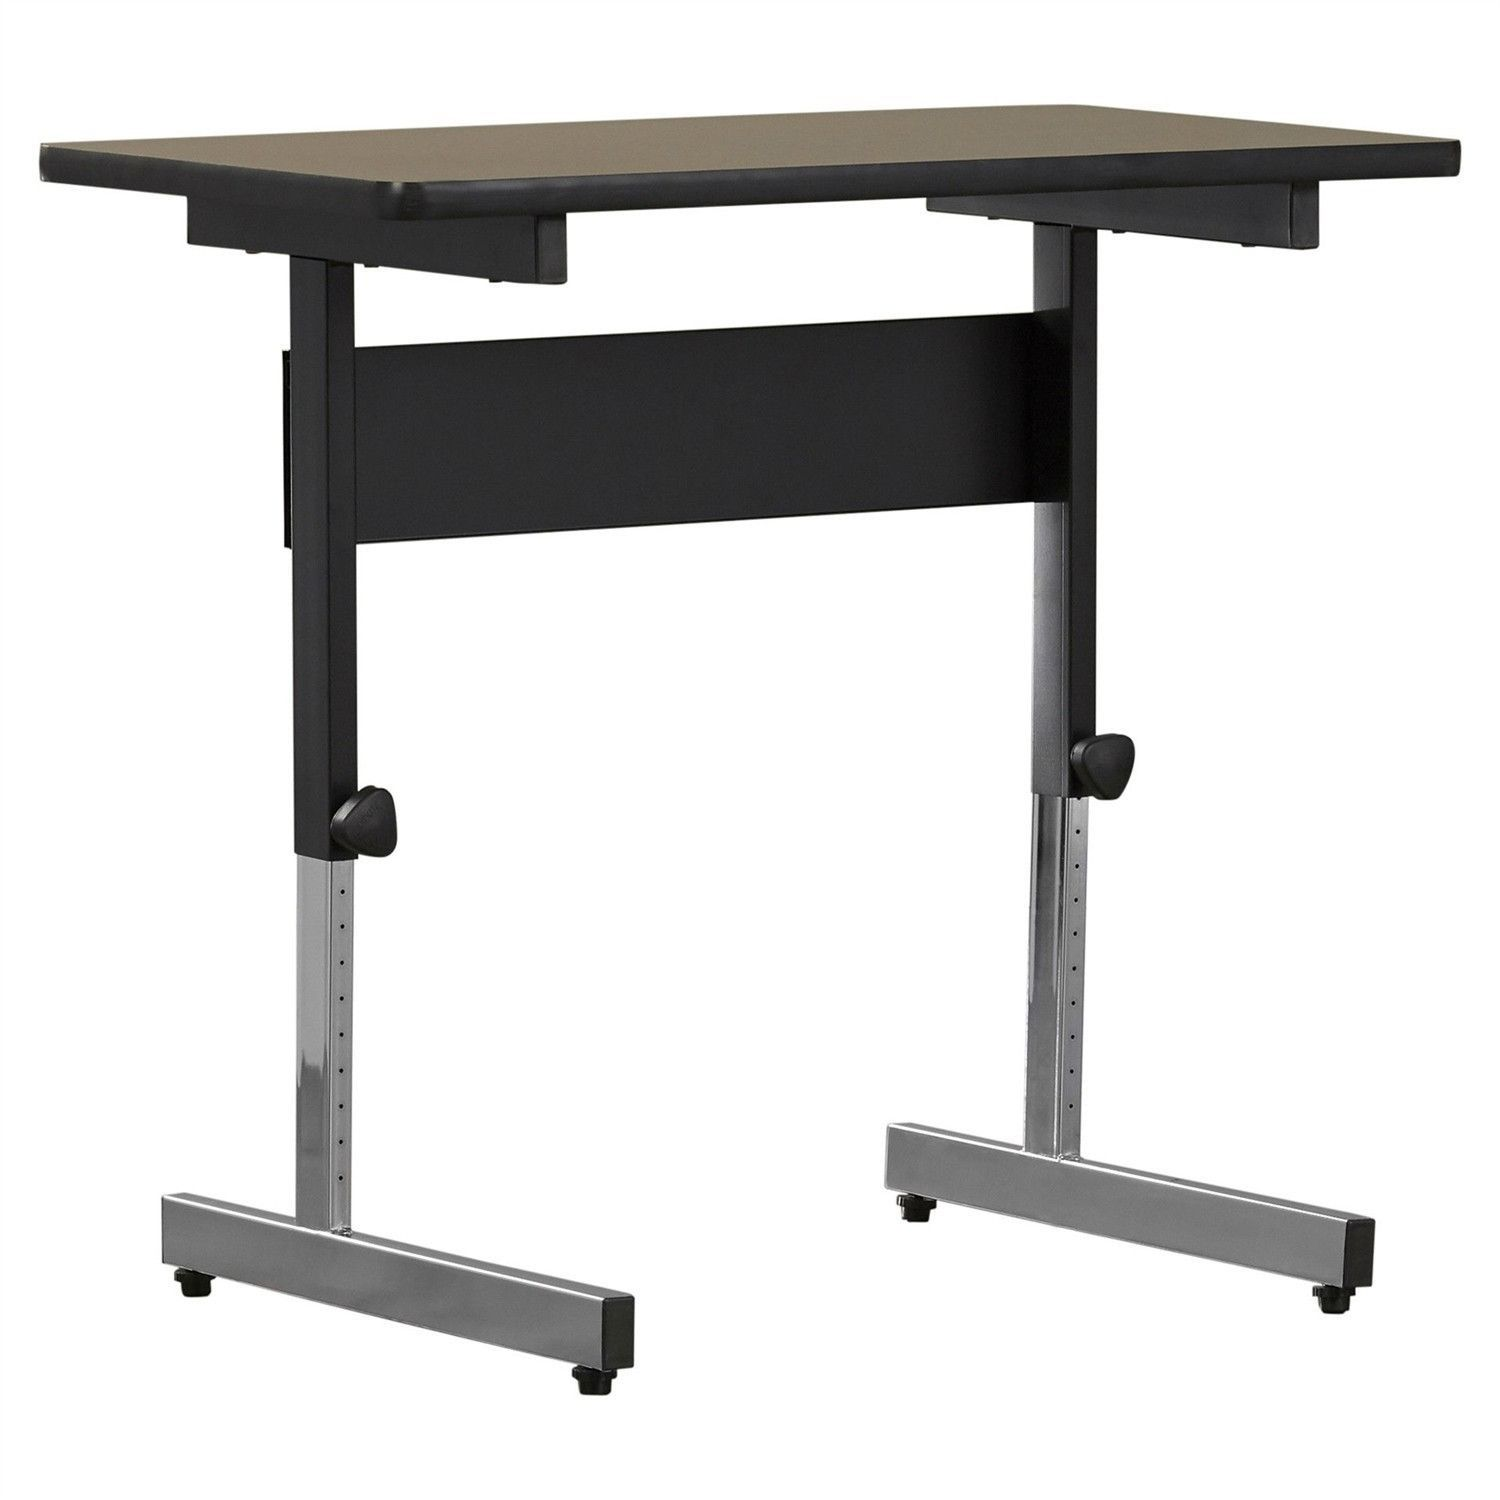 stand up desk adjustable height sitting or standing writing tablet computer laptop table